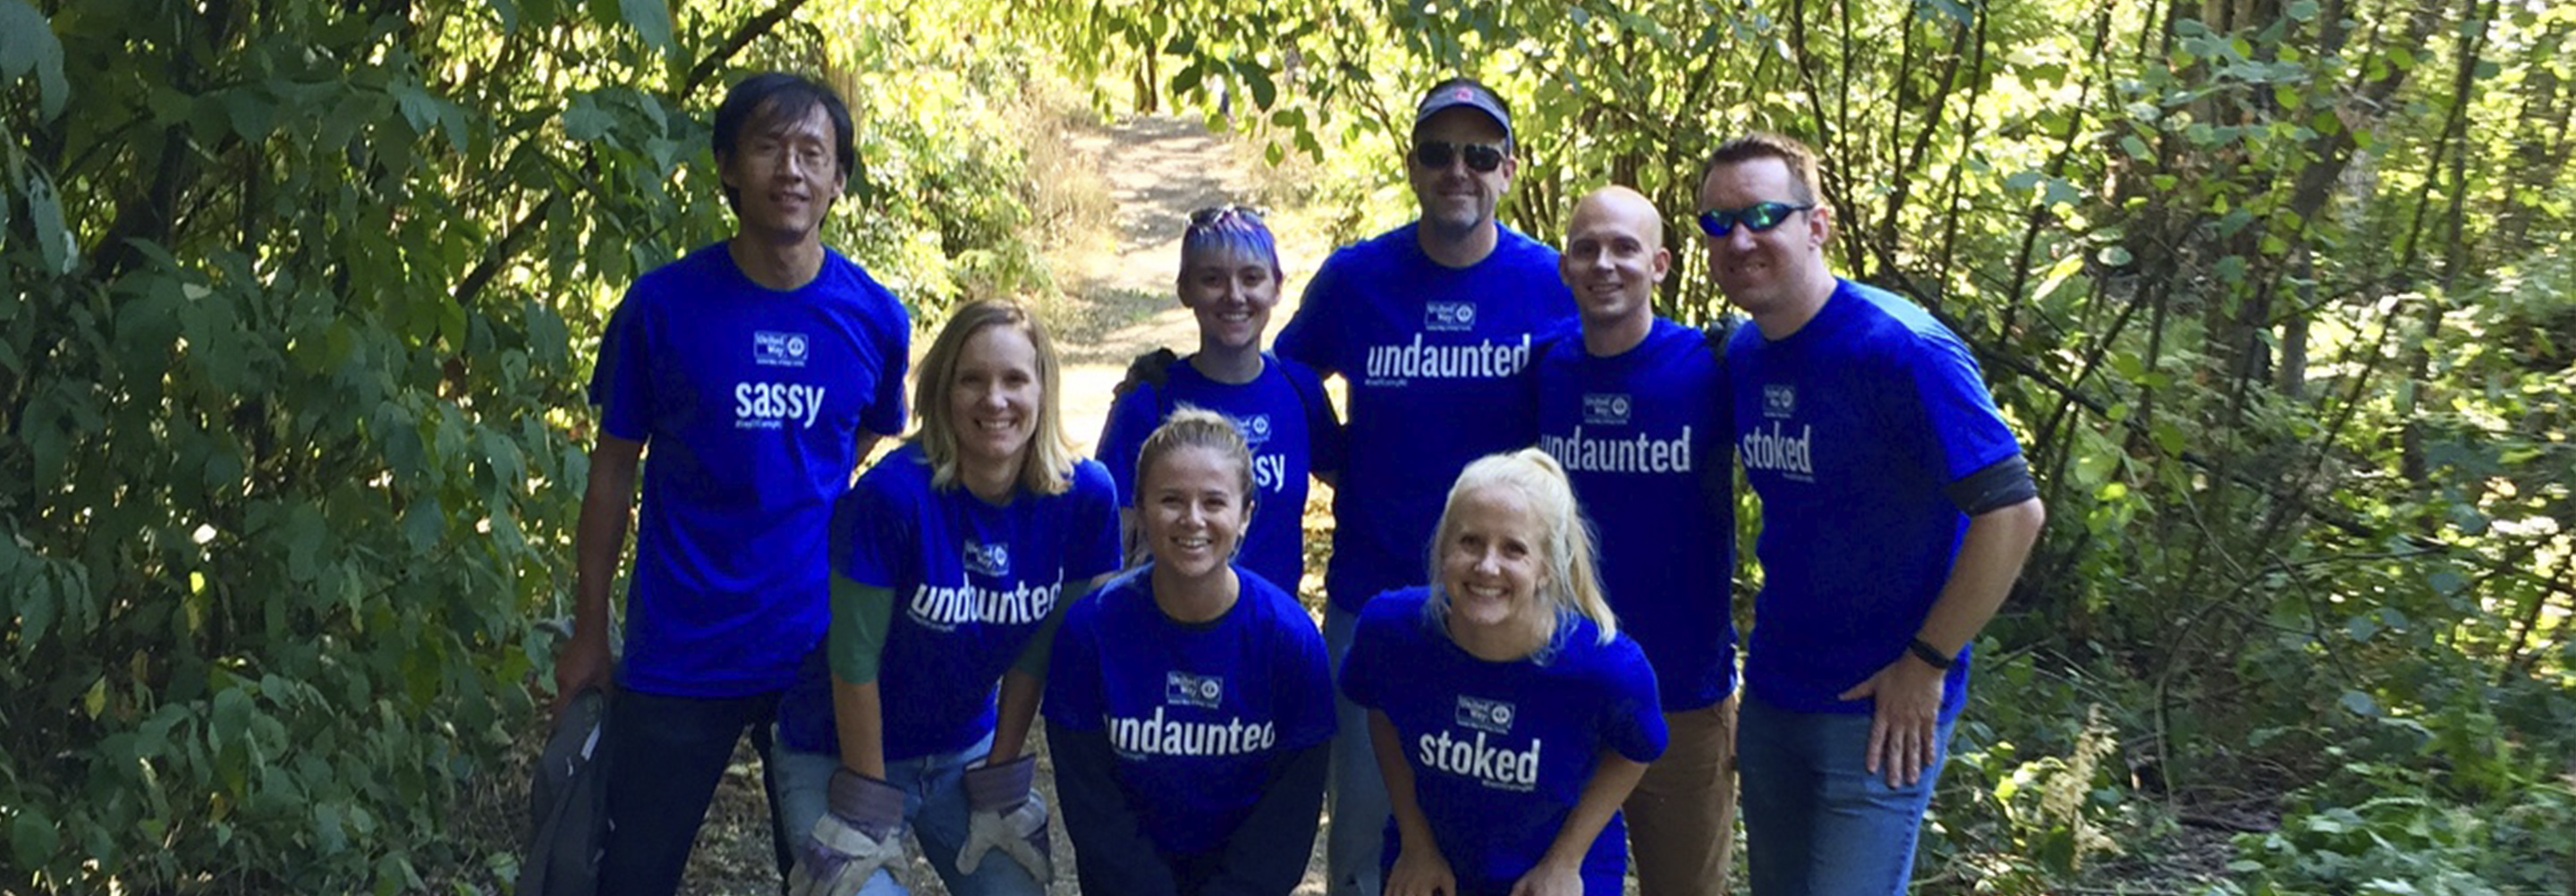 Volunteer - See how LimeMates spent their volunteer time off together